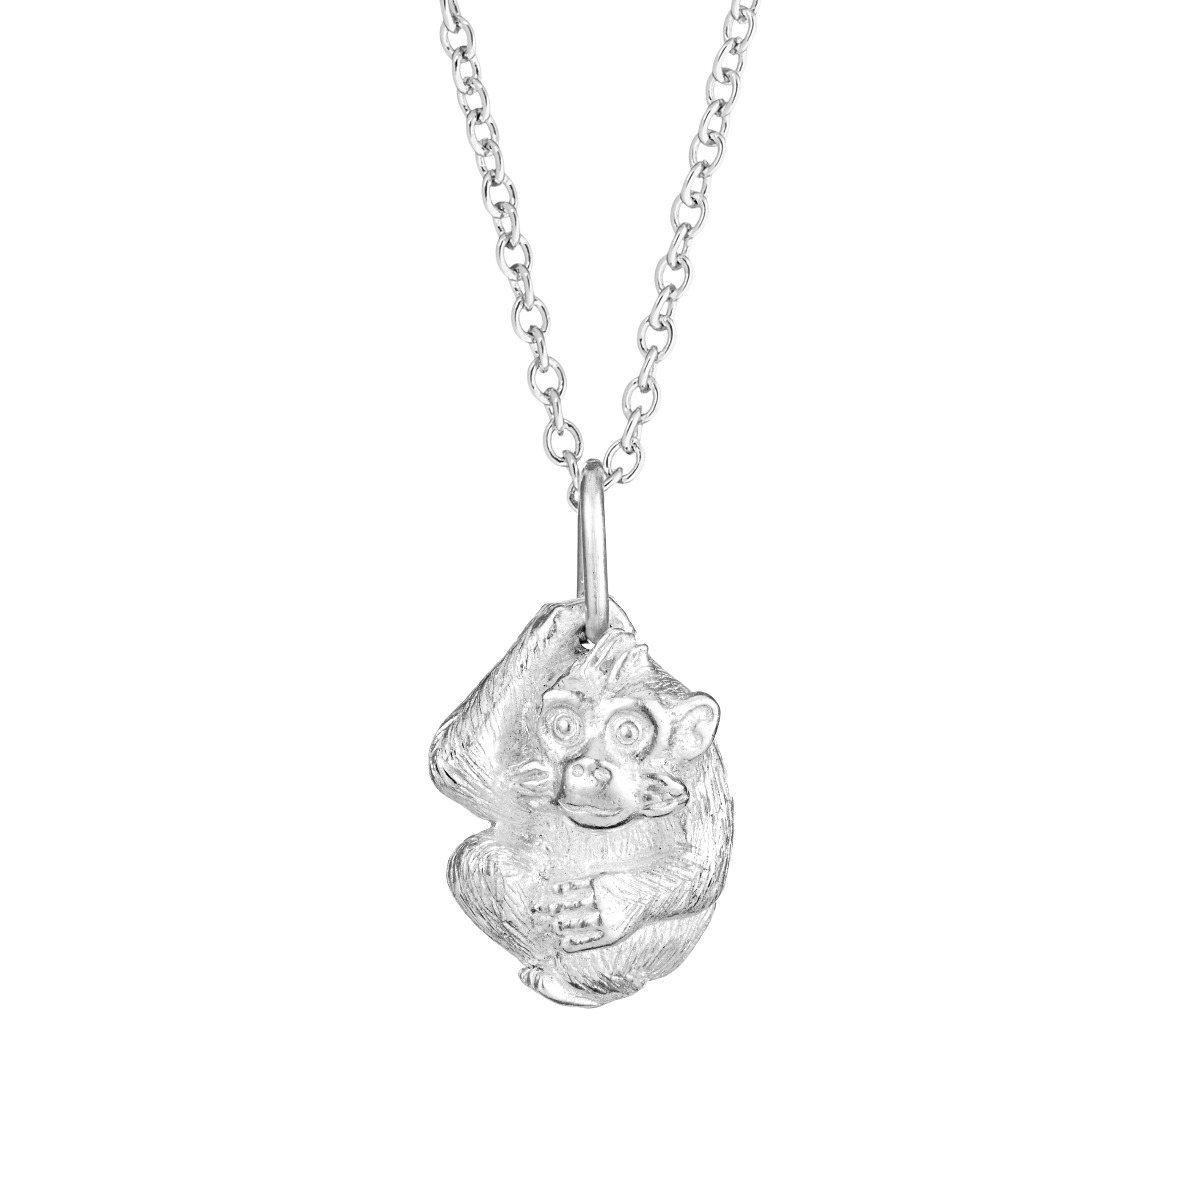 Chinese zodiac pendant necklace (monkey)